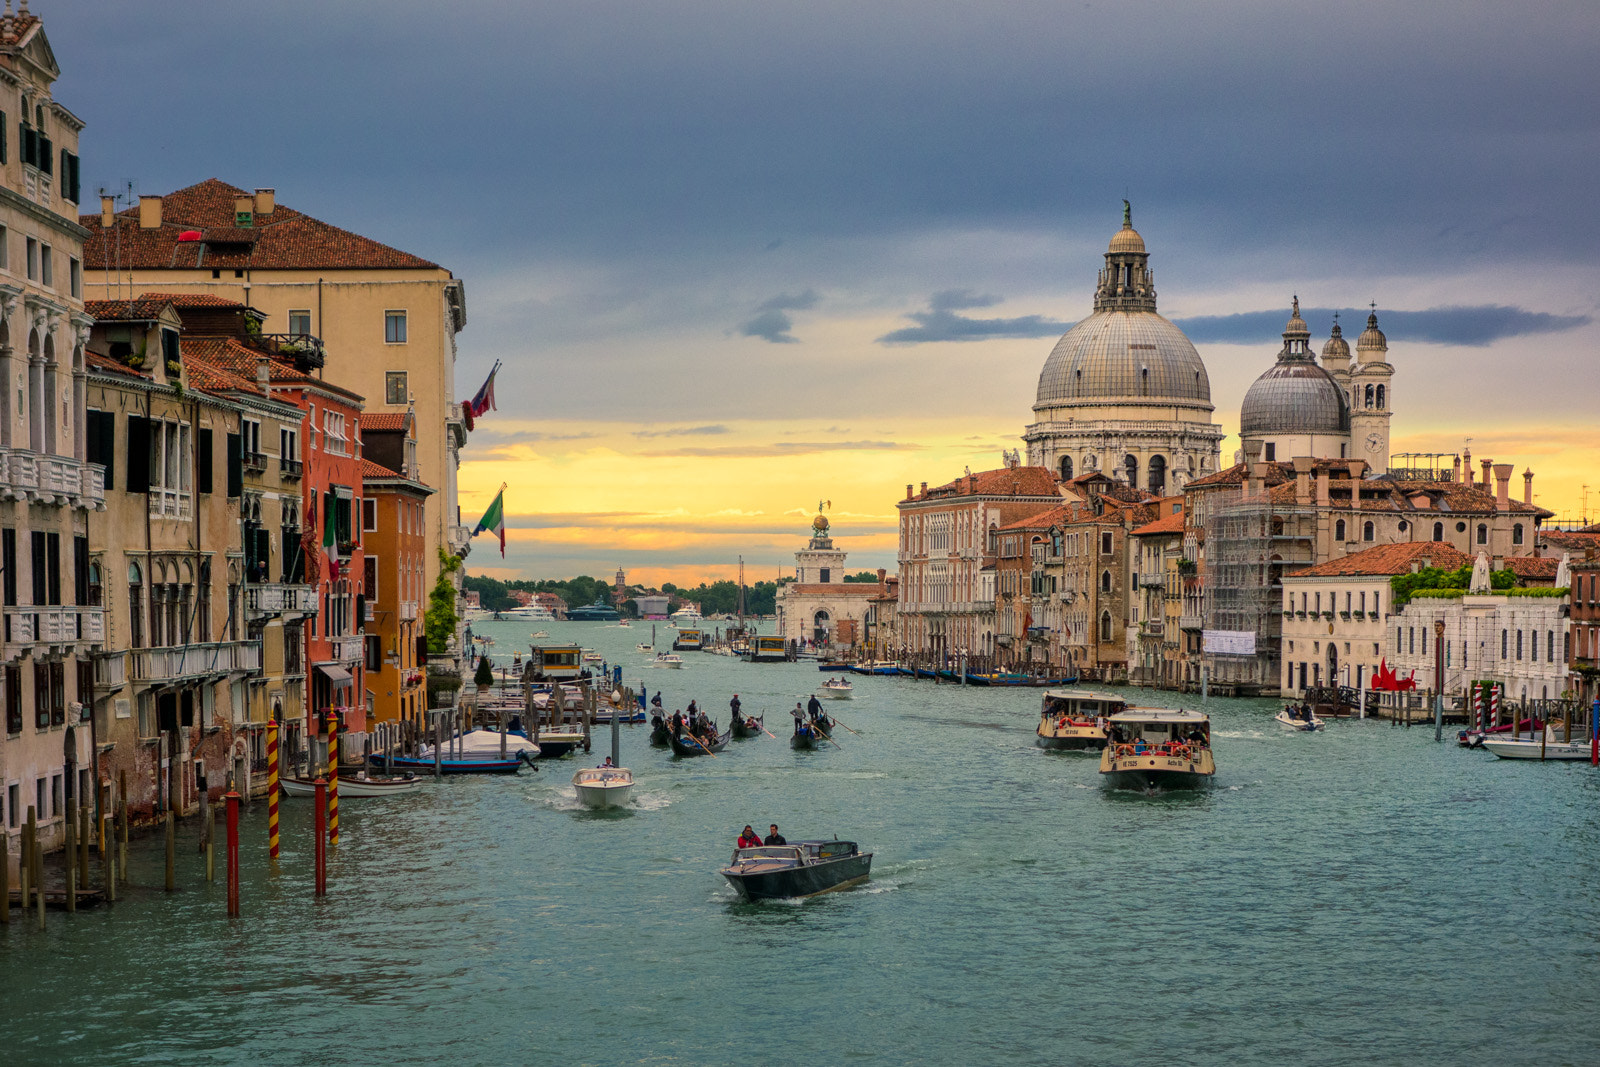 Photograph Venezia by Thierry Hennet on 500px